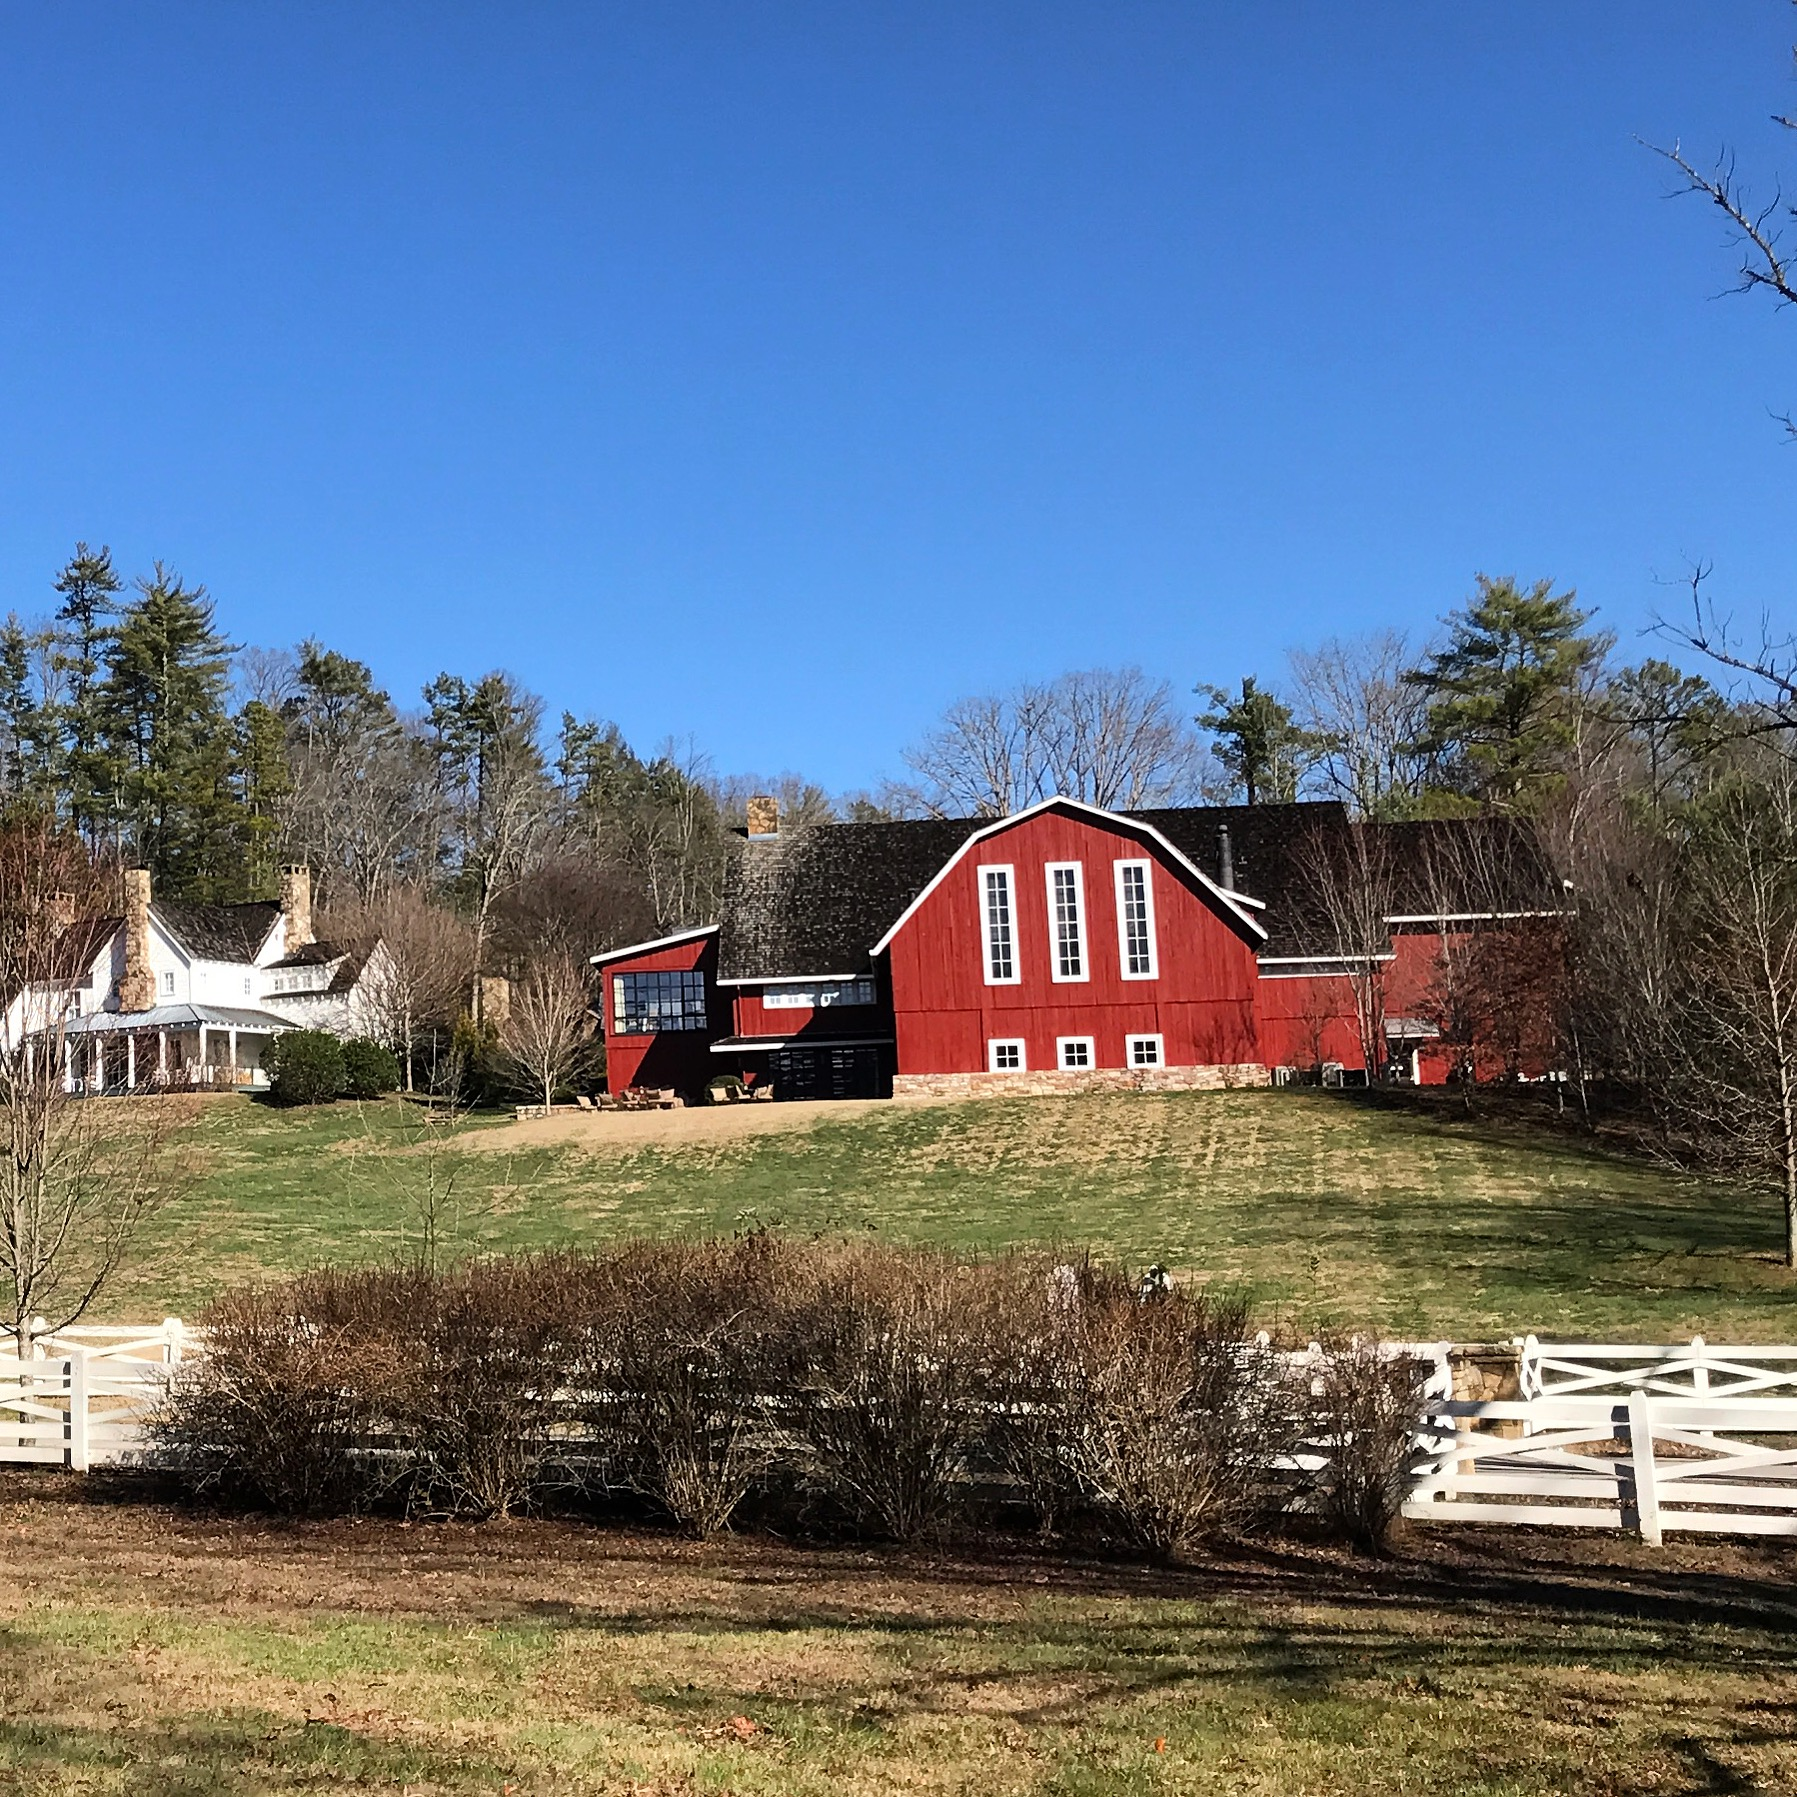 Weekend Getaway to Blackberry Farm - one of my all time favorite trips